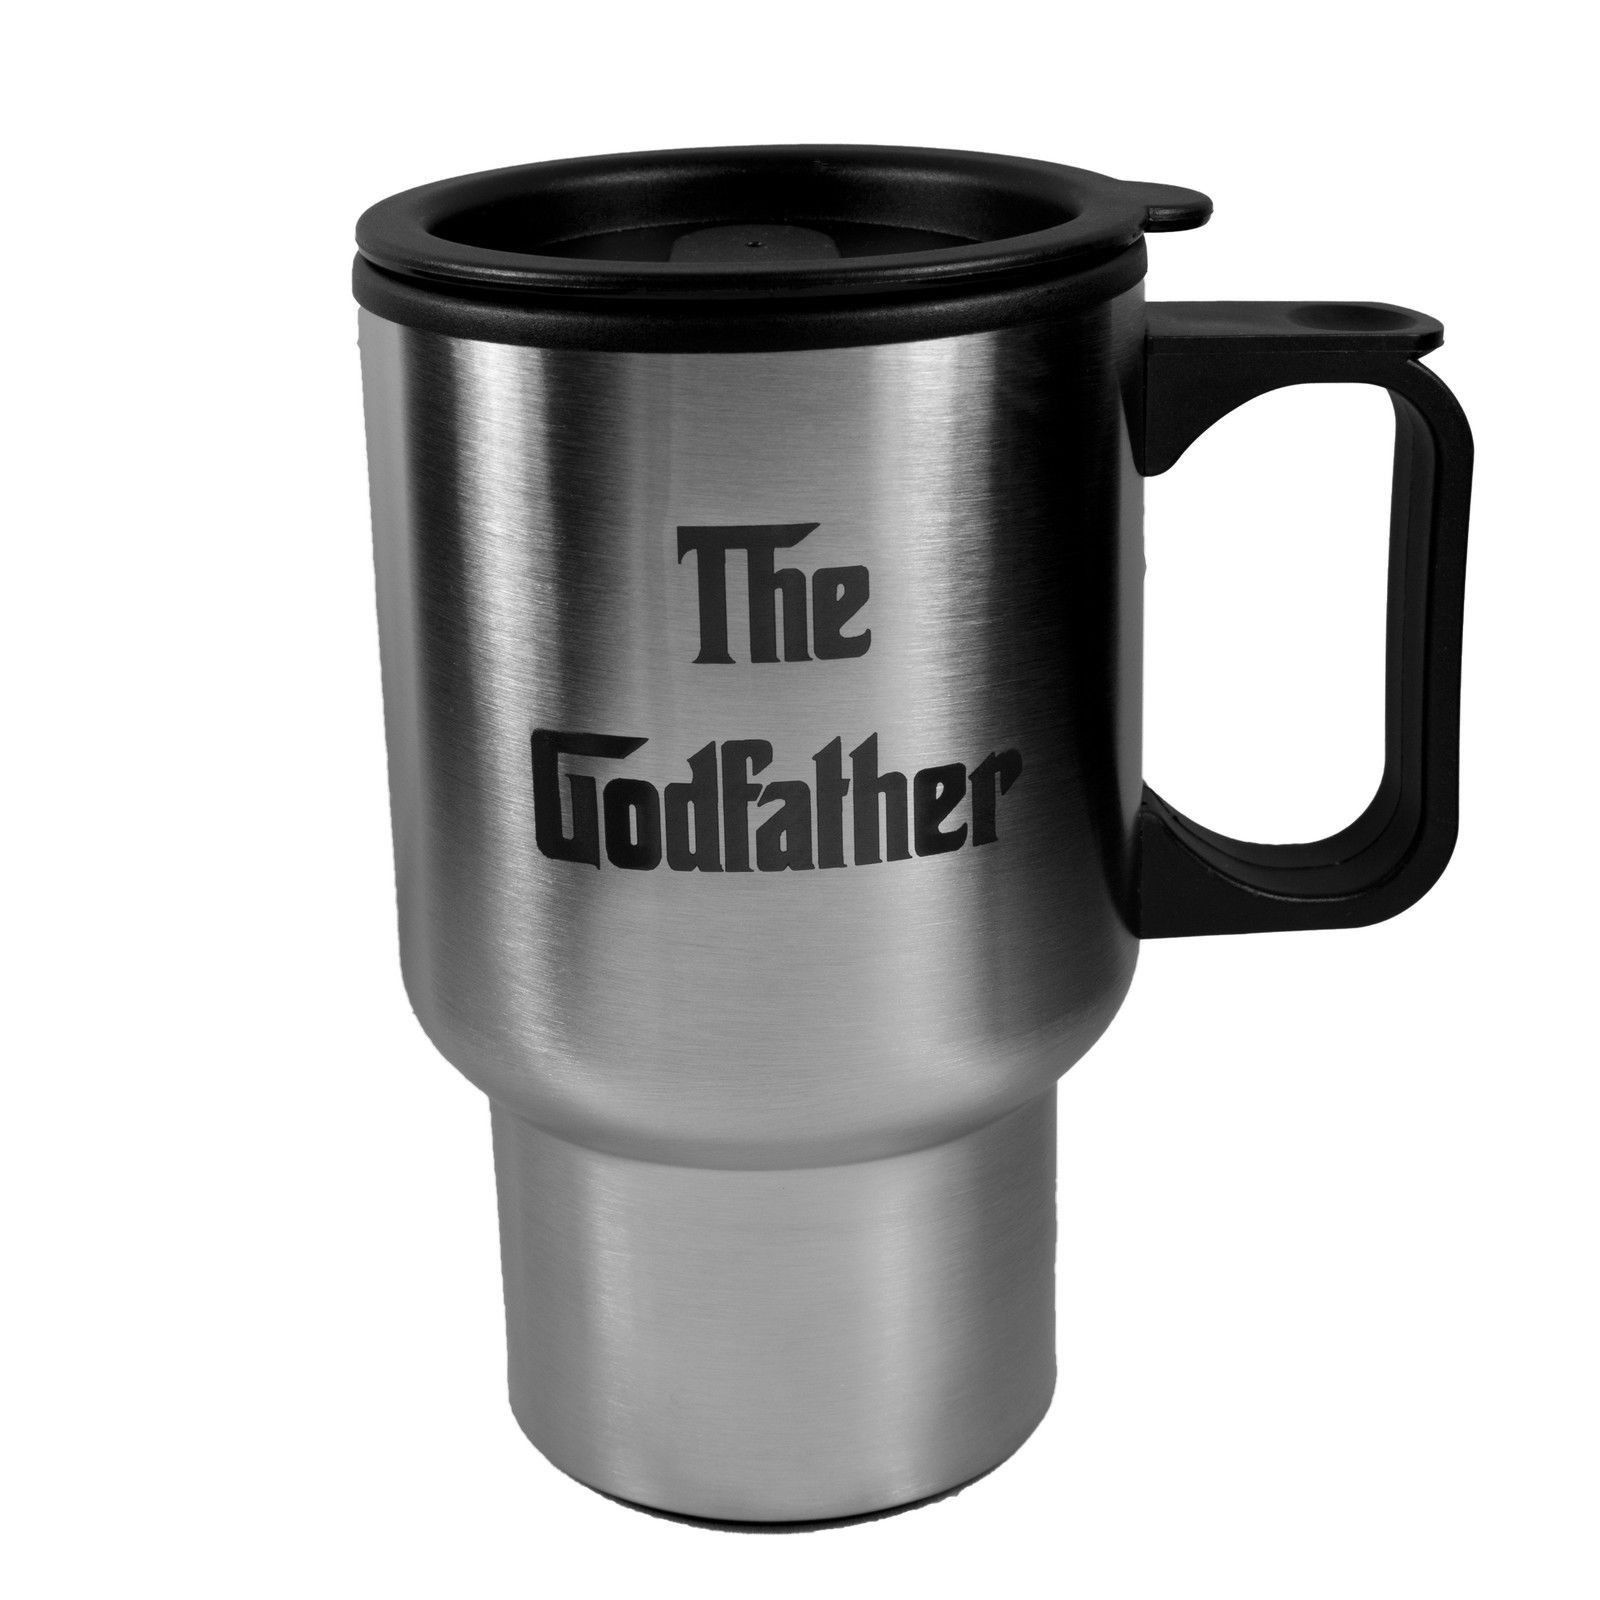 14Oz The Godfather Stainless Steel Travel Mug W/Handle L1